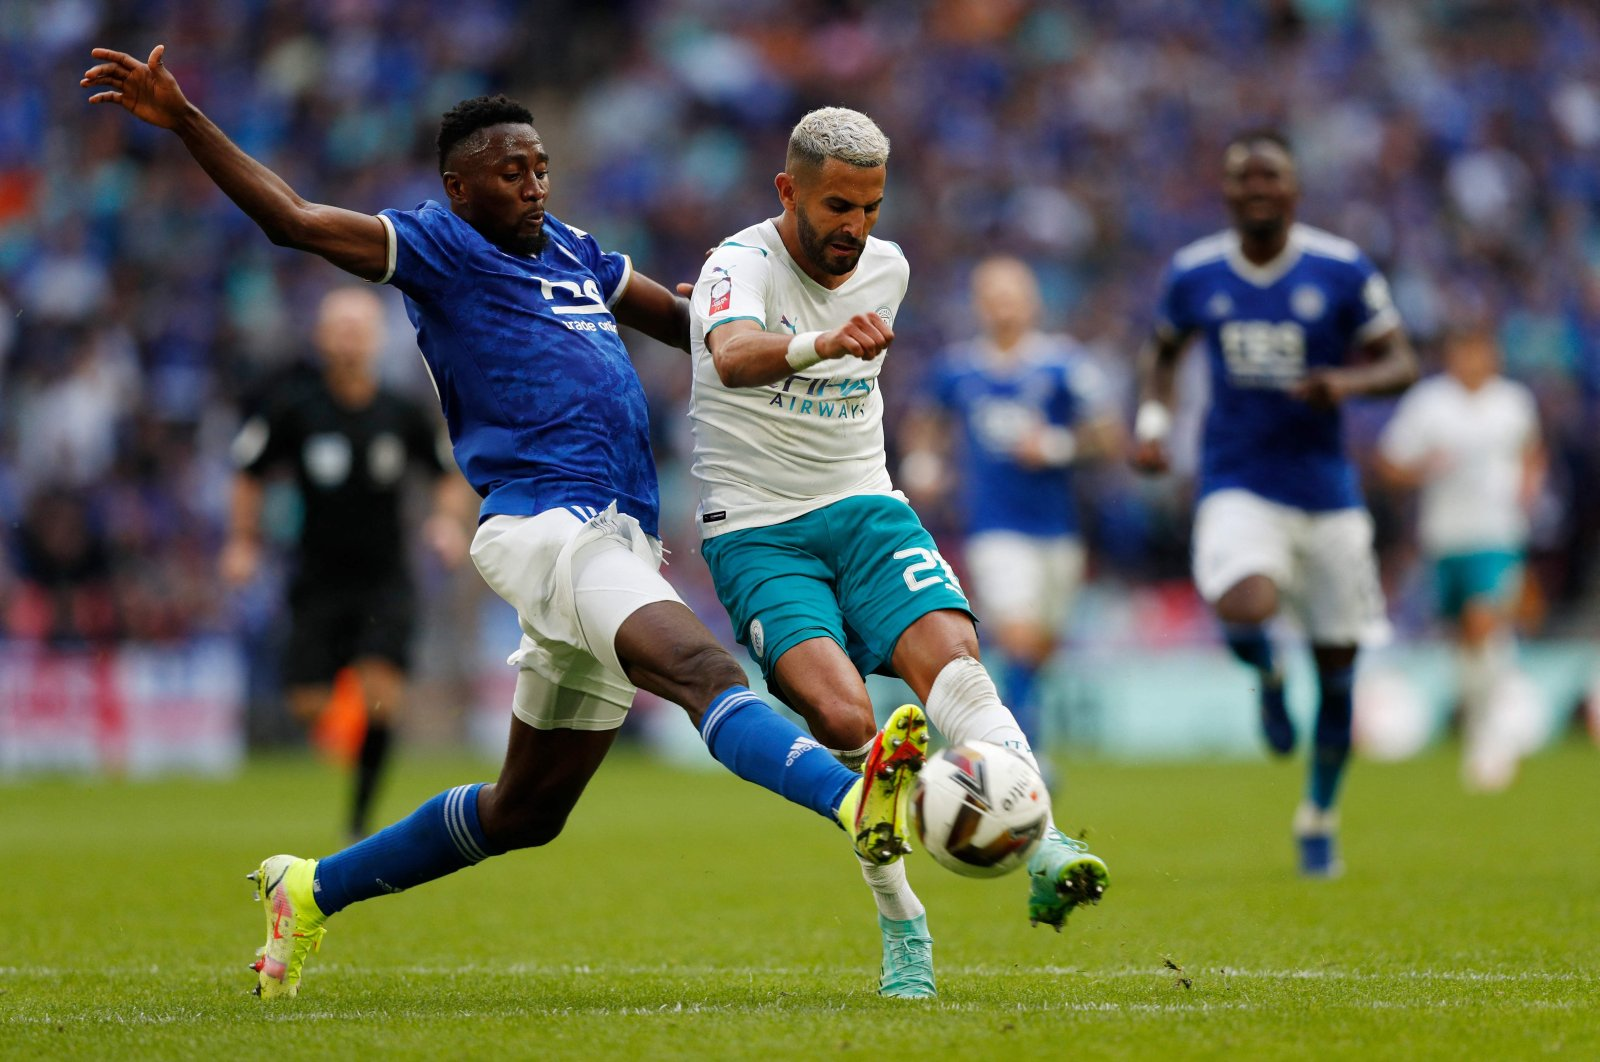 Manchester City's Algerian midfielder Riyad Mahrez (R) tries to shoot past Leicester City's Wilfred Ndidi (L) during the English FA Community Shield match at Wembley Stadium, London, England, Aug. 7, 2021. (AFP Photo)